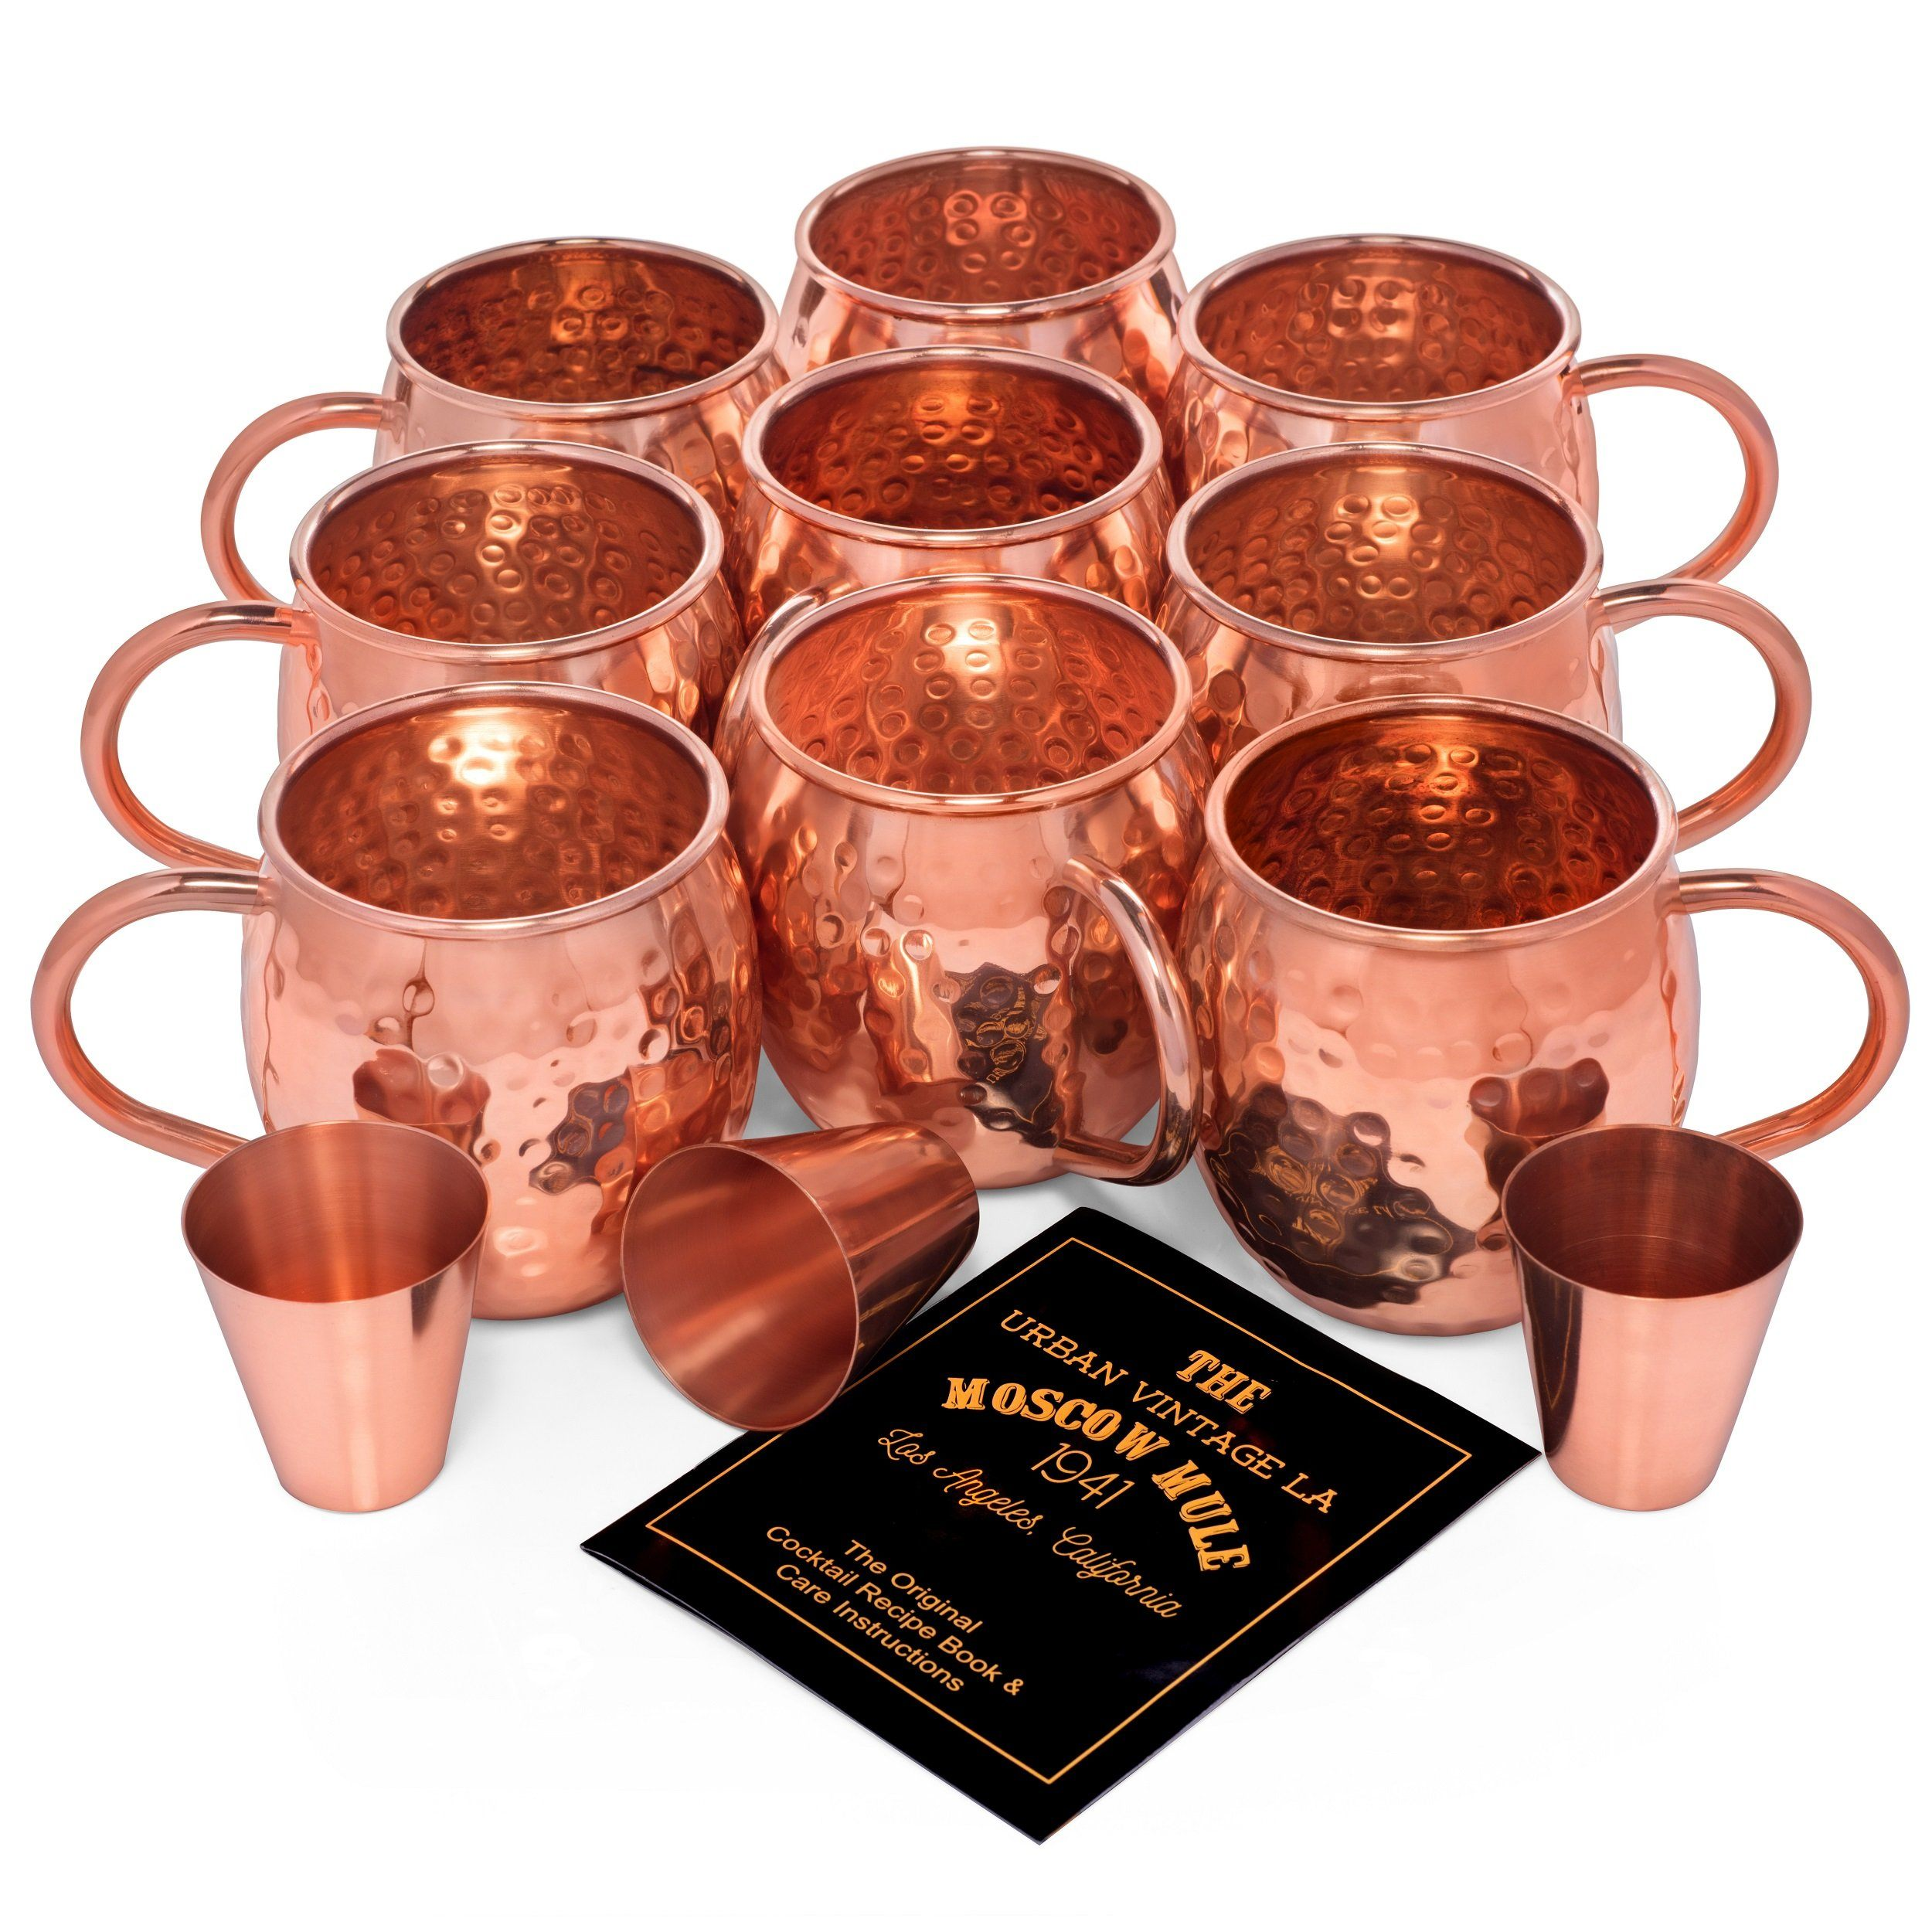 Set of 8 Unlined Urban Vintage LA Moscow Mule Copper Mugs Value Pack for Large Parties With Bonus Extra Mug and 3 Shot Glasses With Illustrated Recipe Book and Care Guide